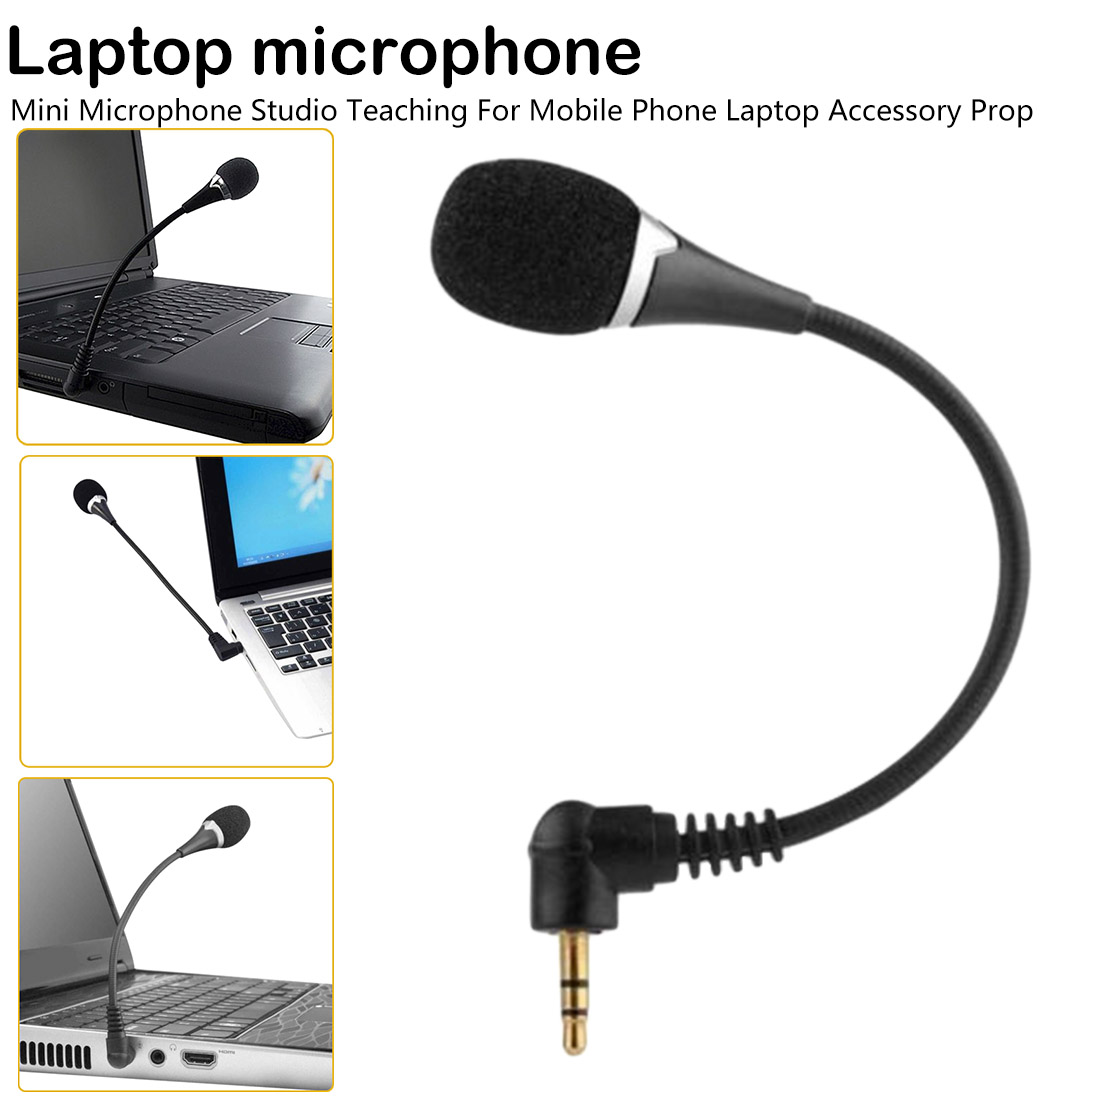 Mini 3.5mm Hands-Free External Headset Microphone Flexible Microphone For Phone Laptop Lecture Teaching Conference Studio Mic